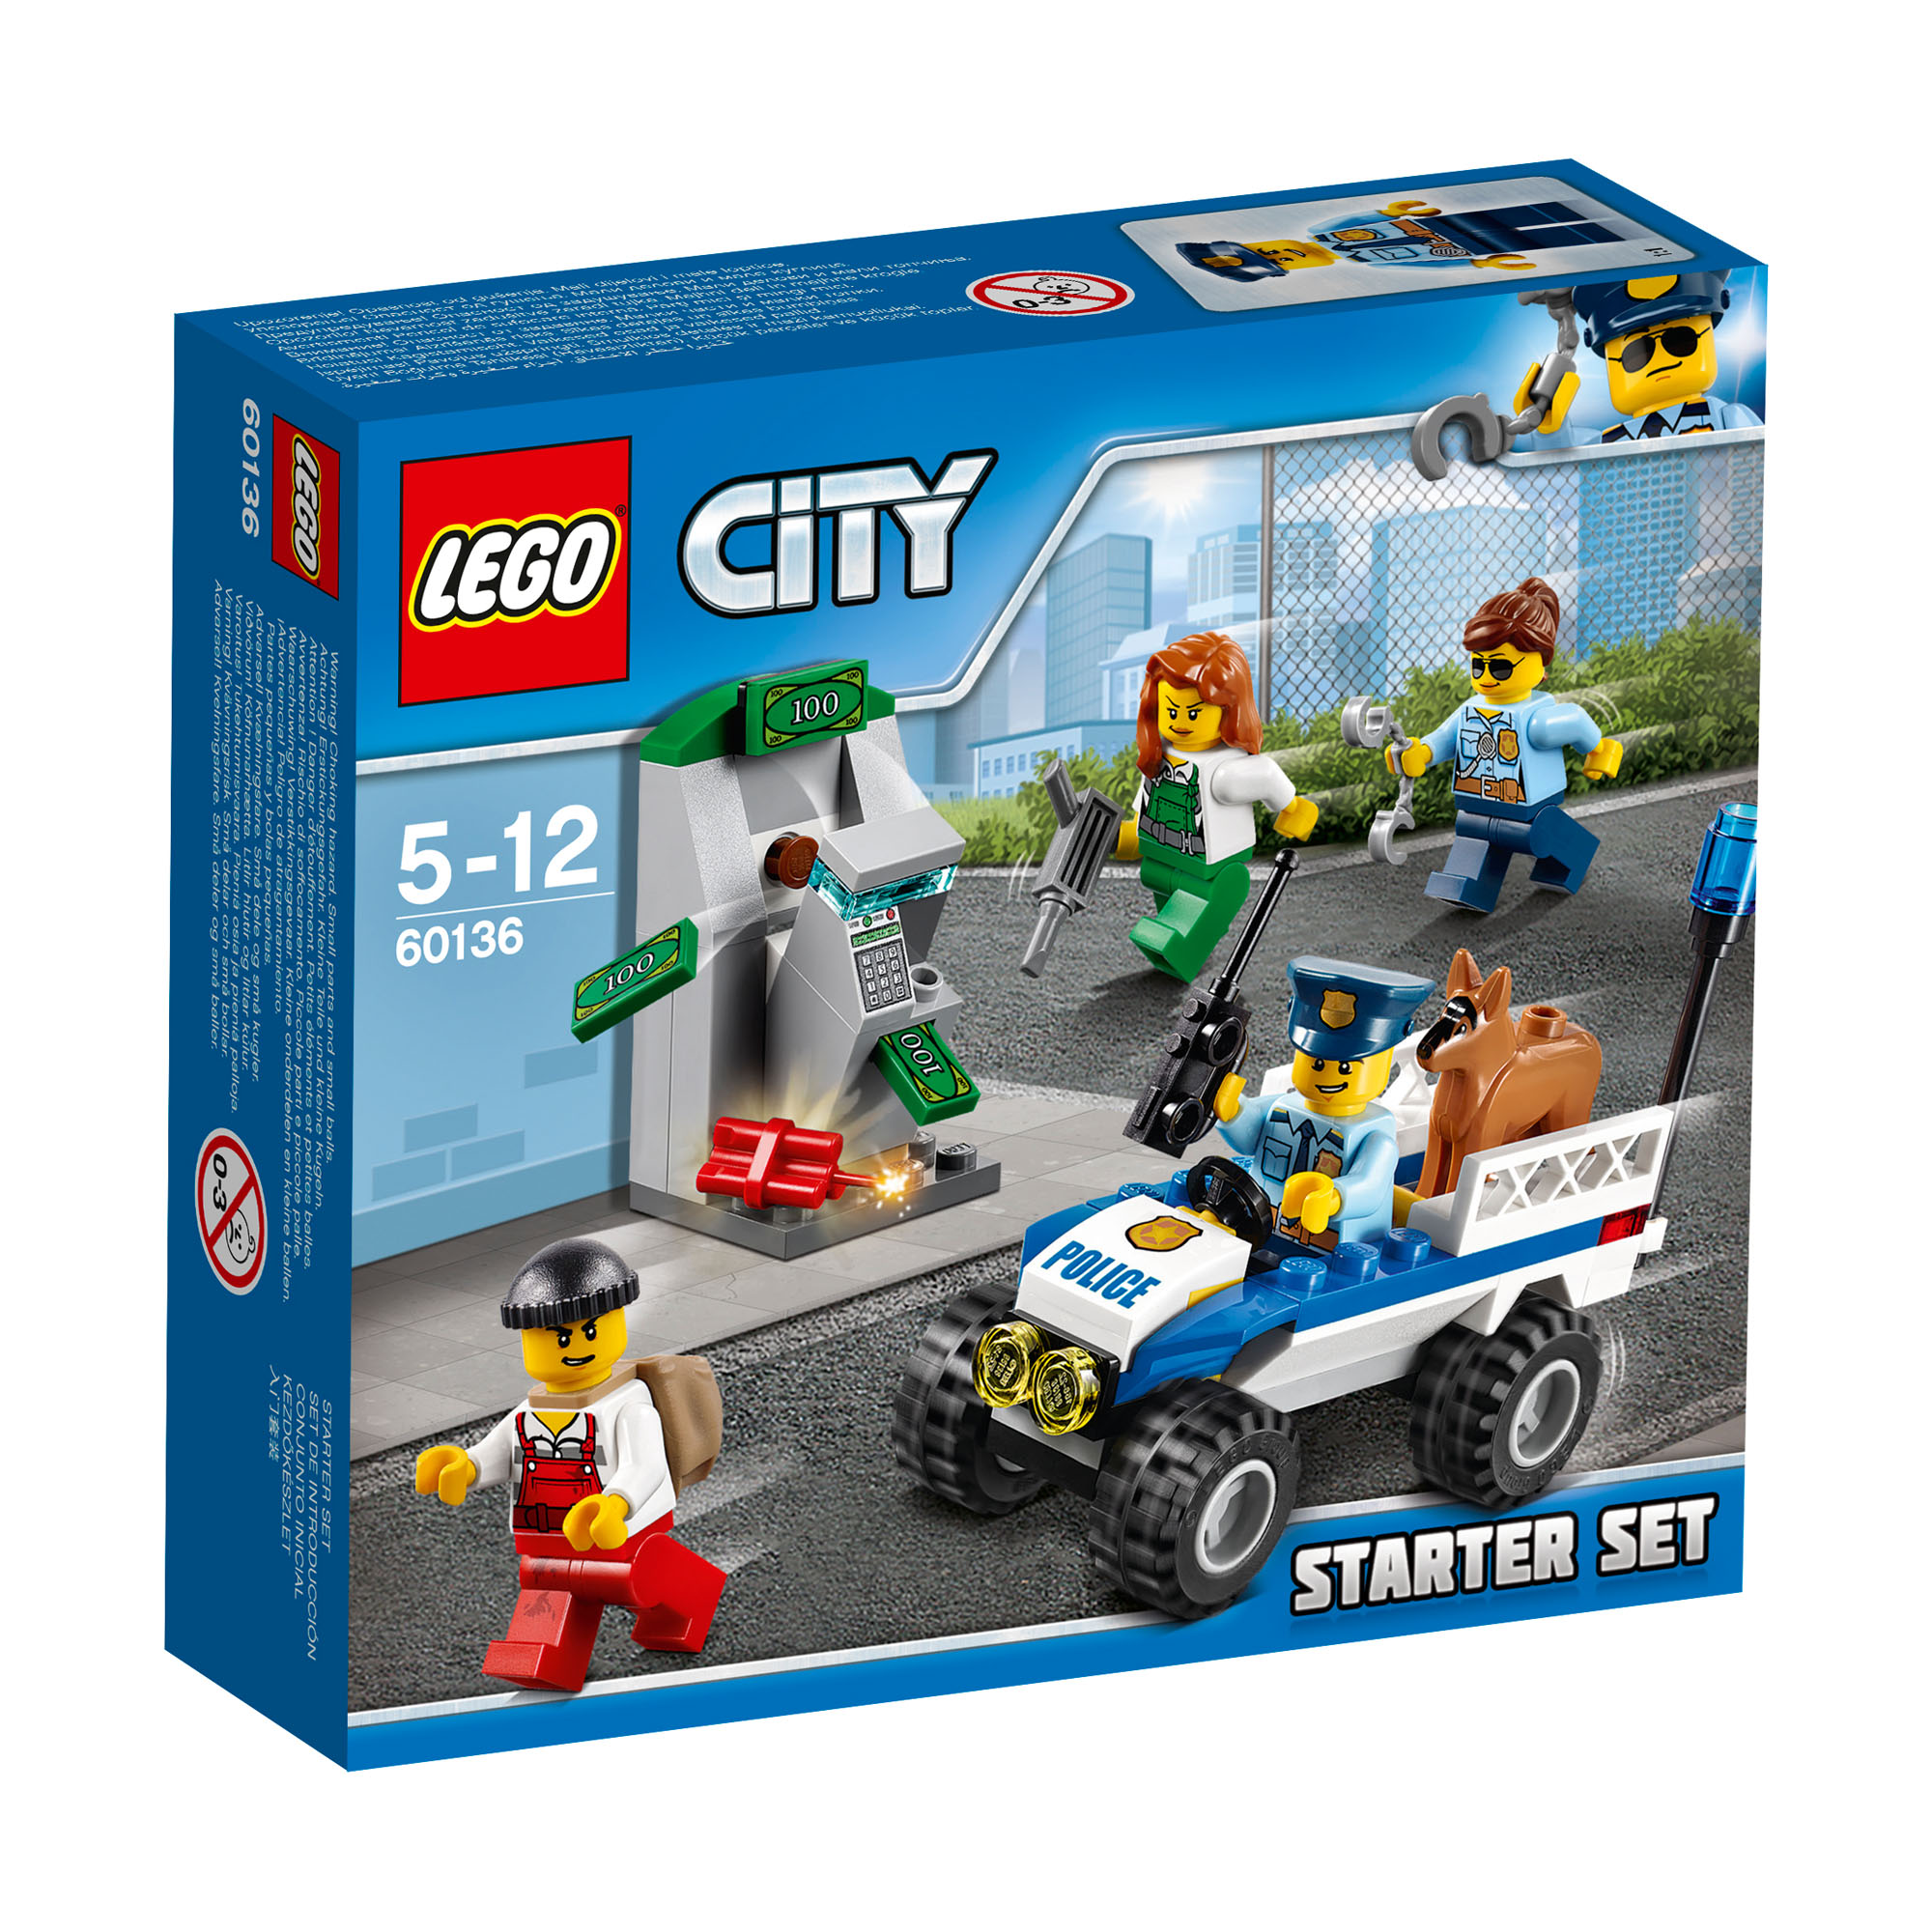 60136 lego city police police starter set 80 pieces age 5 12 new for 2017 ebay. Black Bedroom Furniture Sets. Home Design Ideas